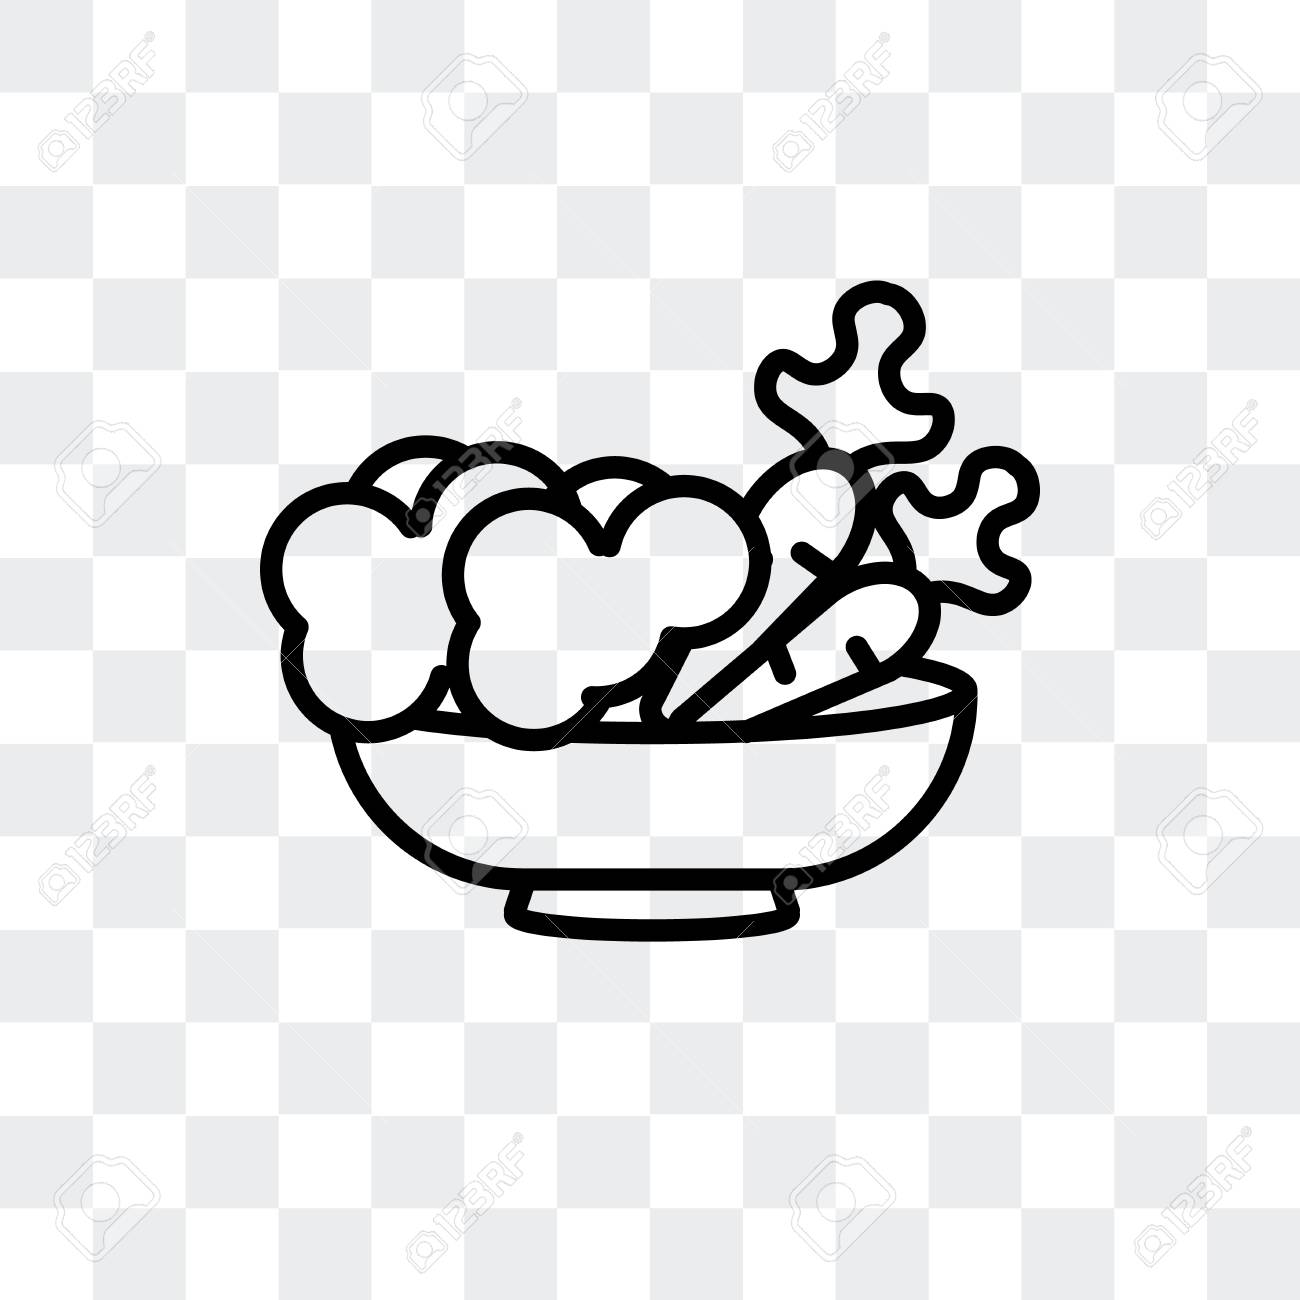 Vegetarian Food Vector Icon Isolated On Transparent Background Royalty Free Cliparts Vectors And Stock Illustration Image 107211242